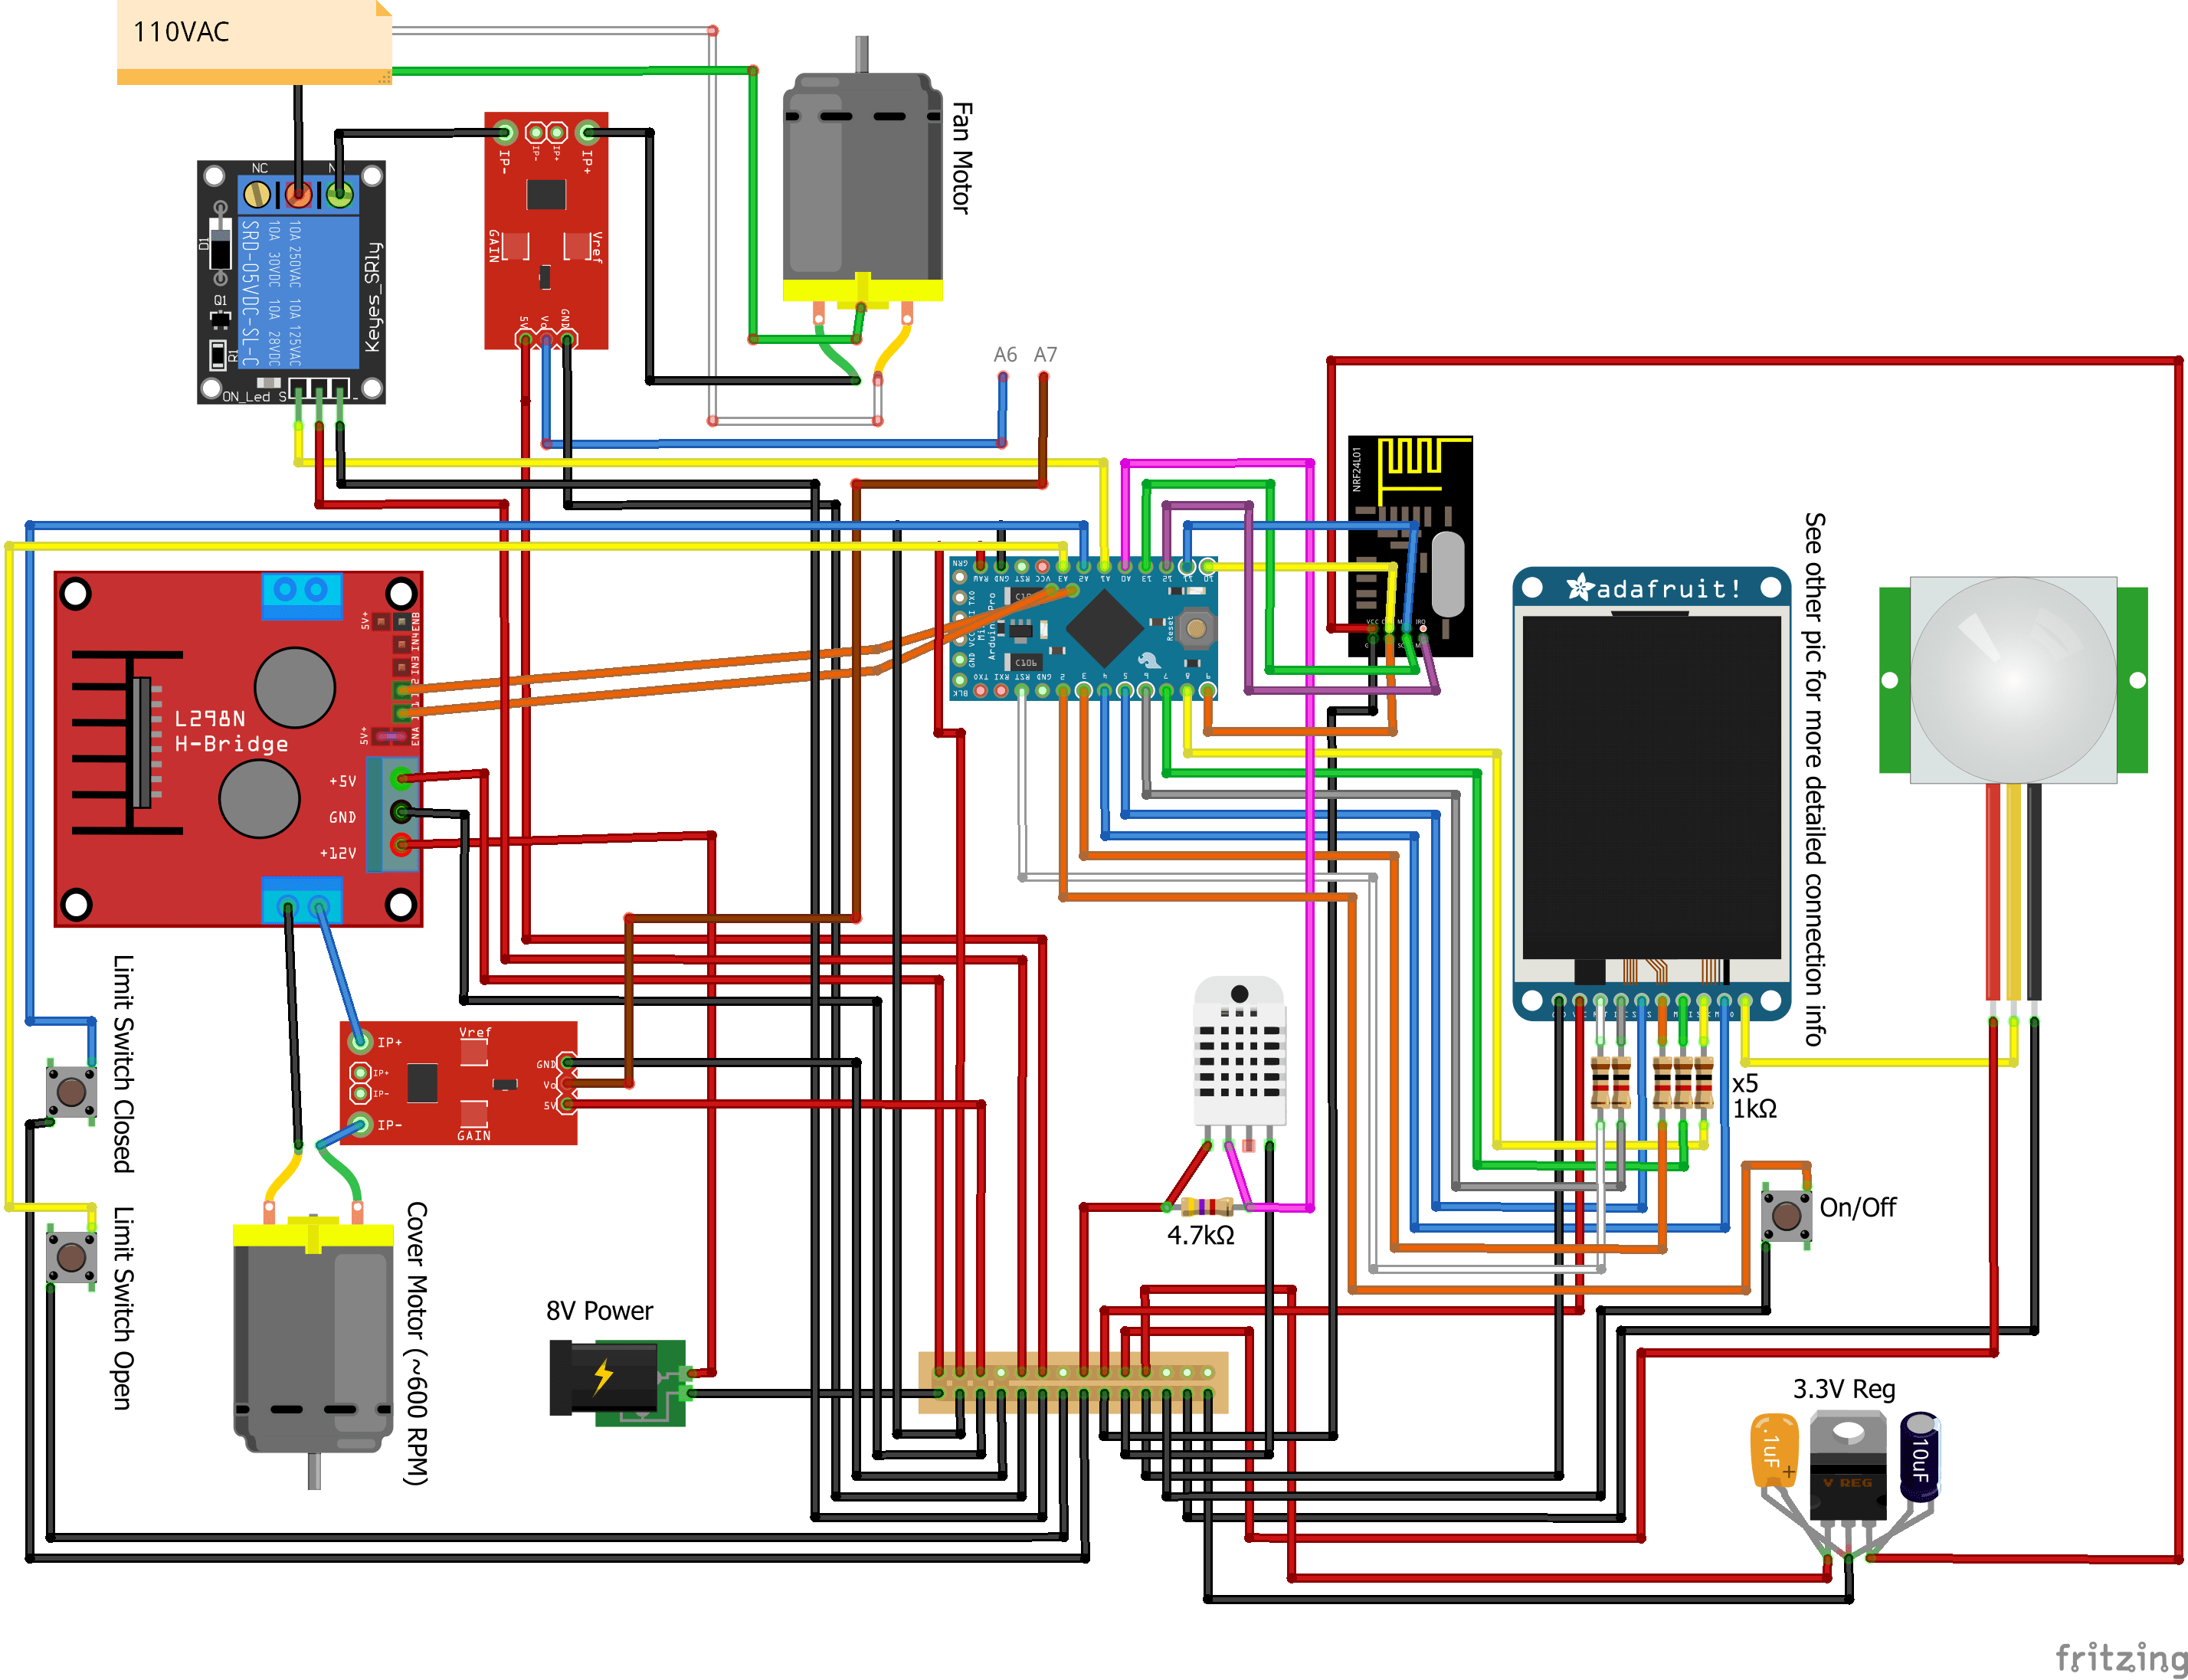 Fritzing Whole House Fan Wiring?resize\\\\\\\\\\\\\\\\\\\\\\\\\\\\\\\\\\\\\\\\\\\\\\\=665%2C511\\\\\\\\\\\\\\\\\\\\\\\\\\\\\\\\\\\\\\\\\\\\\\\&ssl\\\\\\\\\\\\\\\\\\\\\\\\\\\\\\\\\\\\\\\\\\\\\\\=1 clayton 1600g wood furnace wiring diagrams wiring diagrams clayton wood furnace wiring diagram at webbmarketing.co